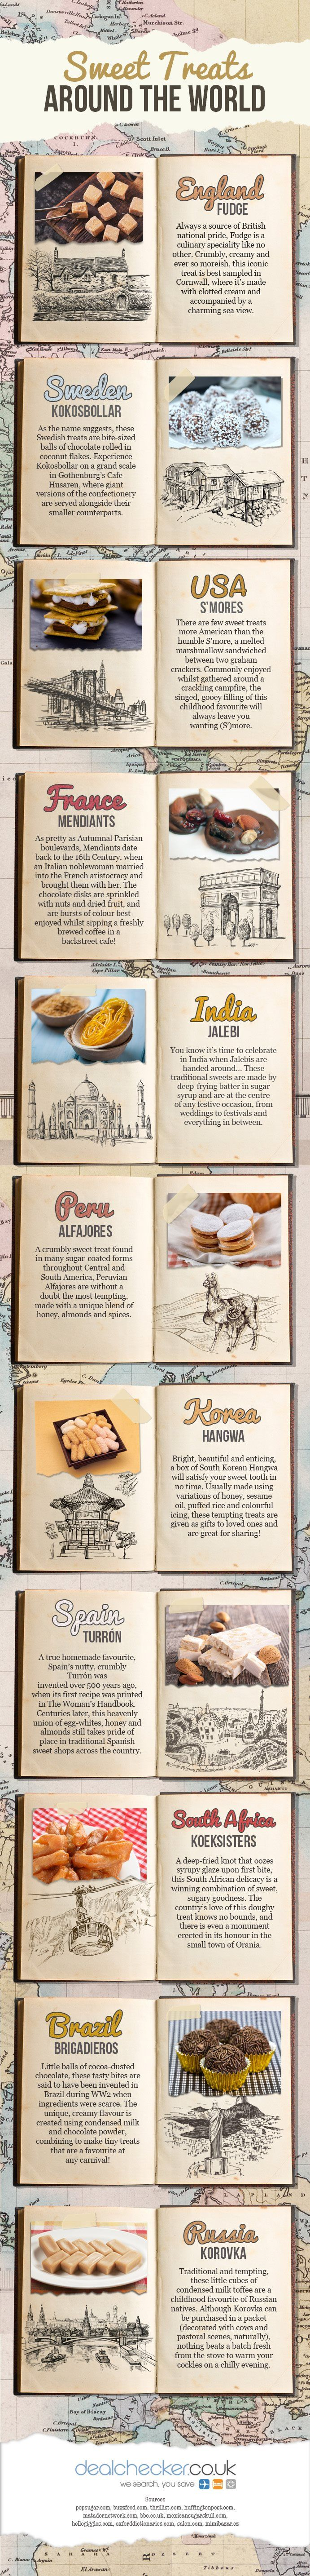 Sweet Treats Around the World #infographic